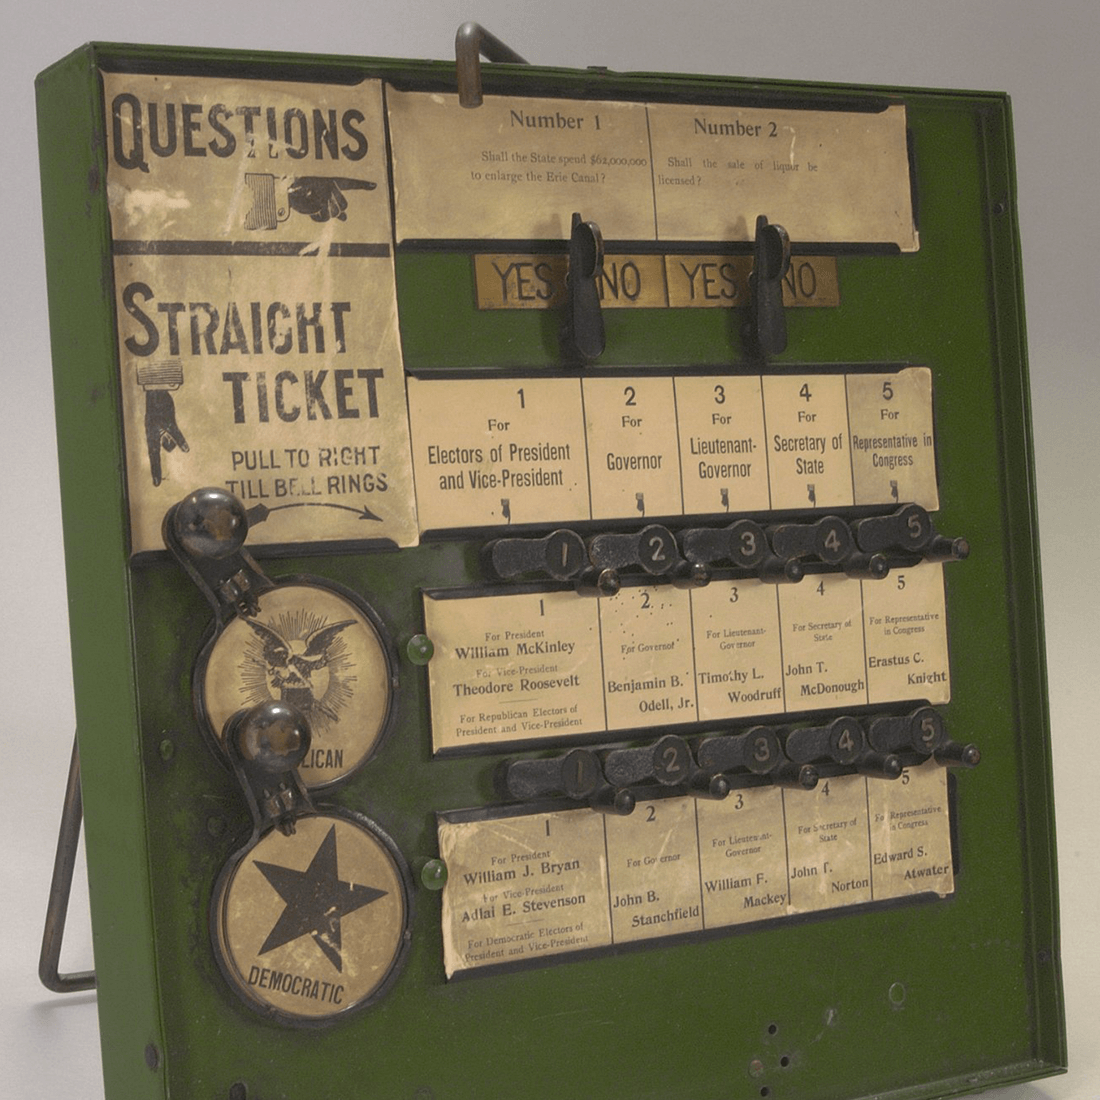 New York State Demonstration Voting Machine, ca. 1900 (Source: Cornell University Library/Flickr)